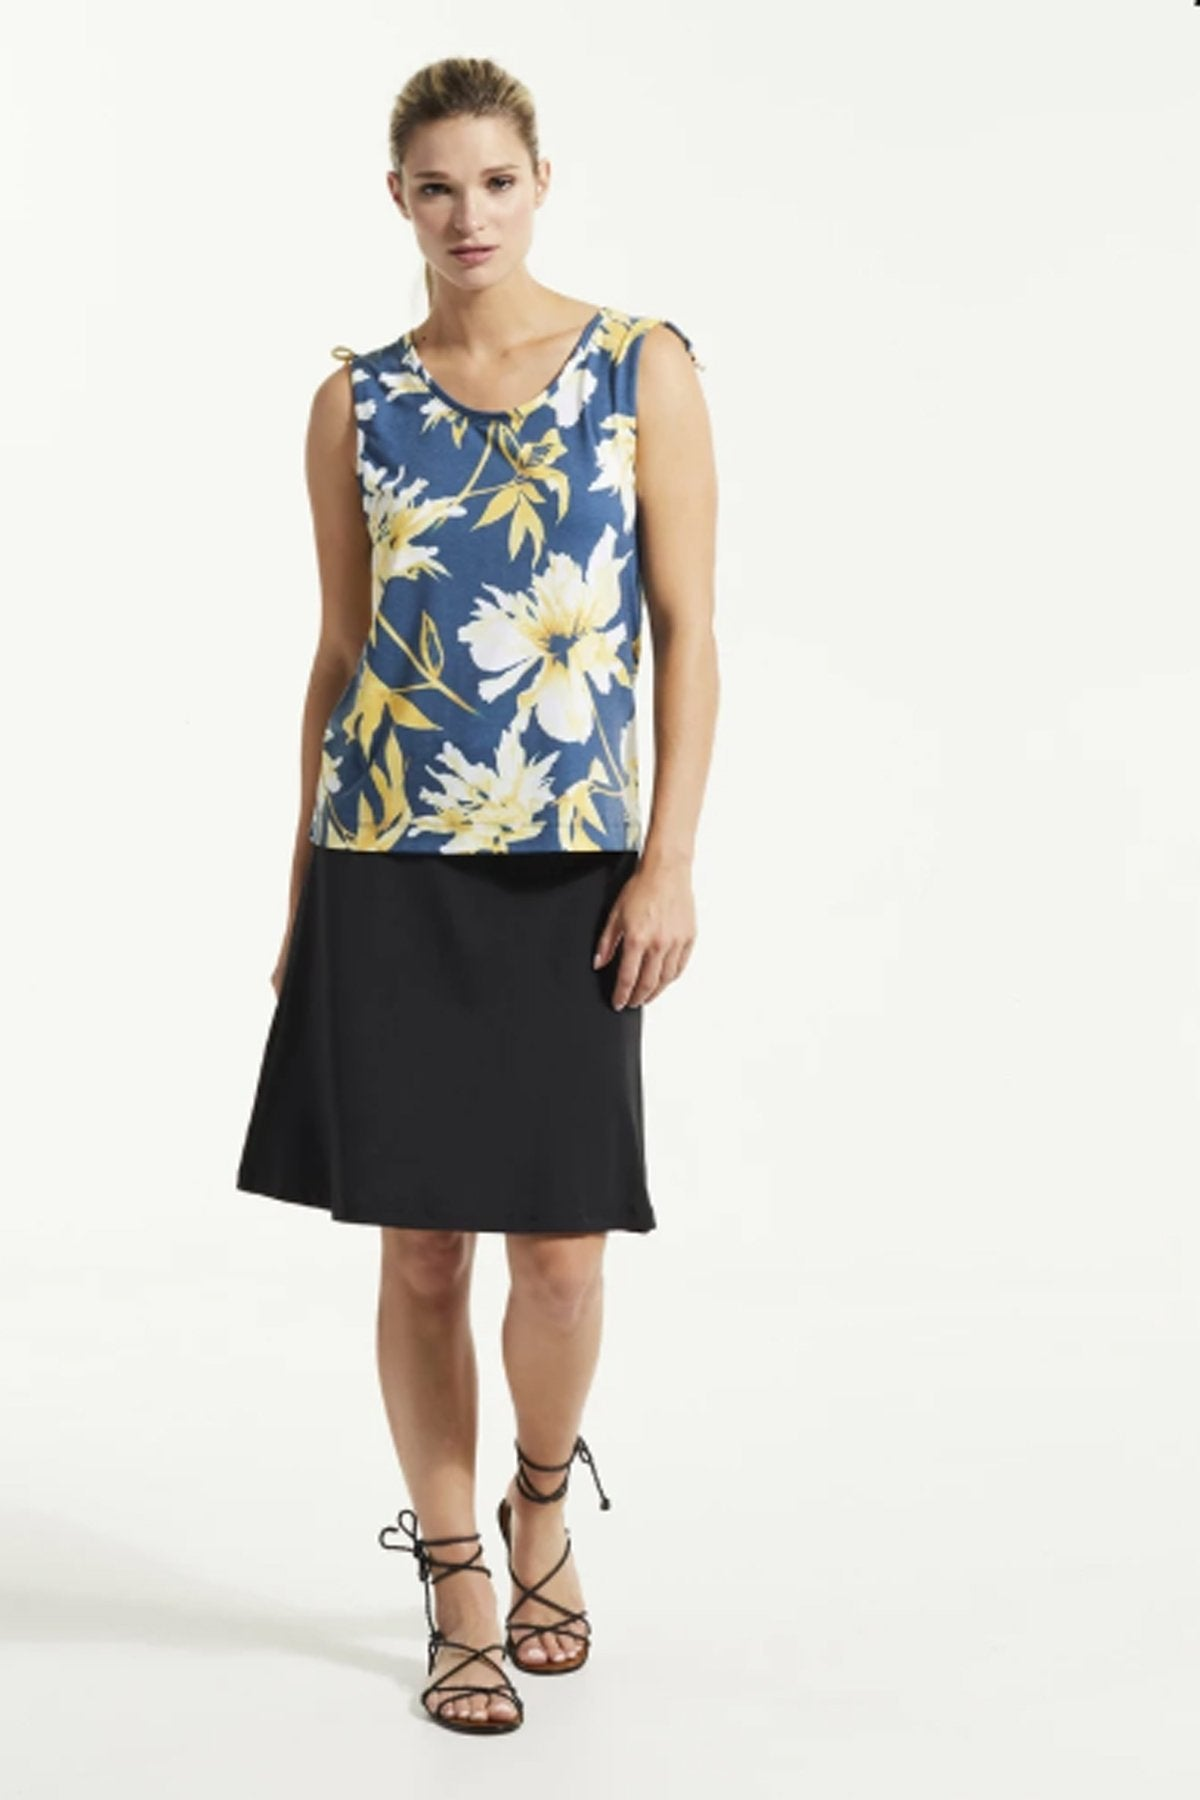 SUD Top by FIG Clothing, Bowerbird Carnation, tank top, drawstrings at shoulders, Drirelease fabric, sizes XS to XL, made in Canada